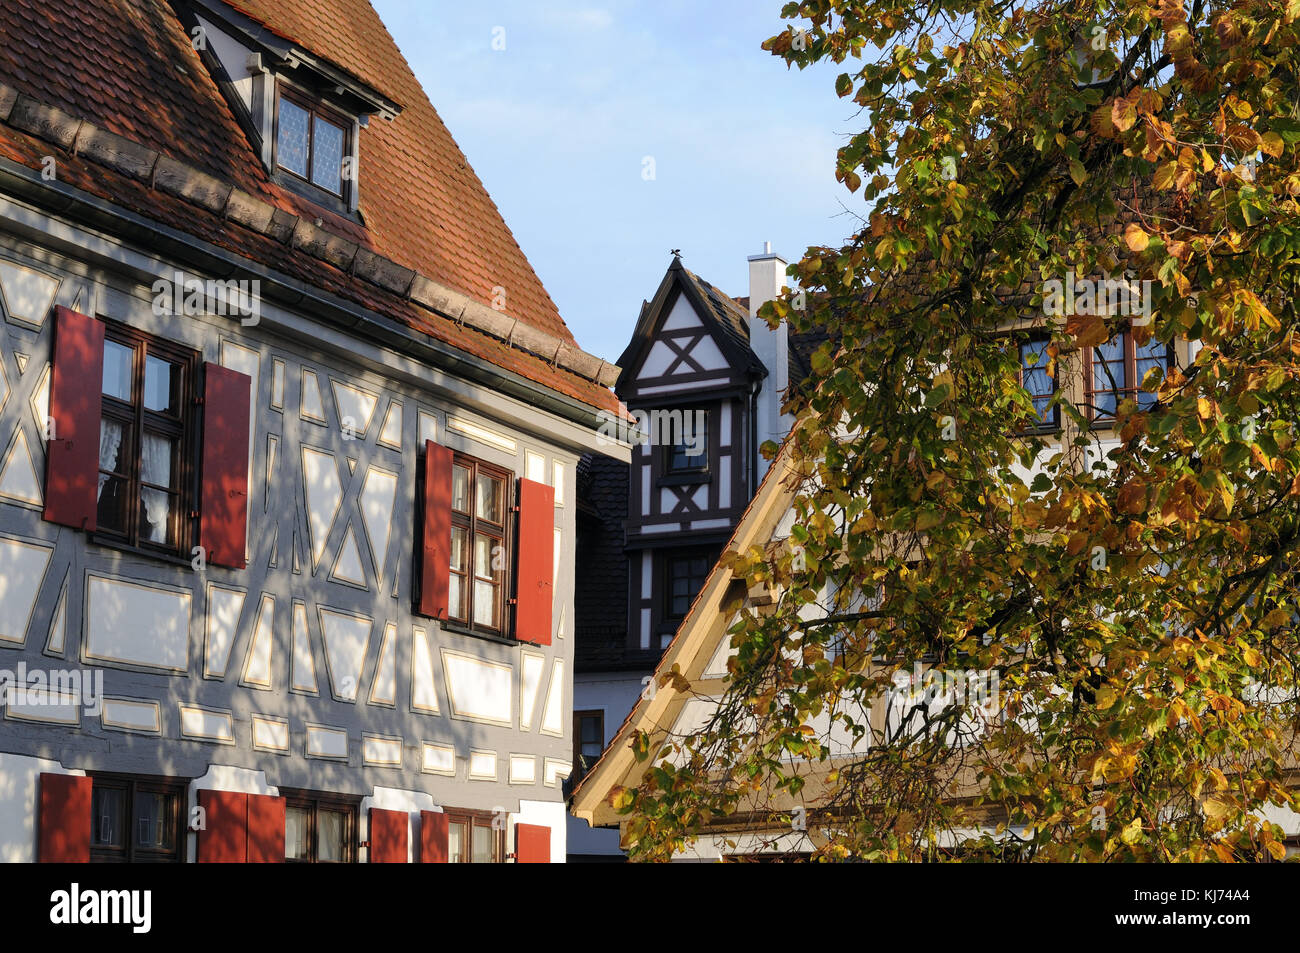 old half timbered houses in historic stock photos old half timbered houses in historic stock. Black Bedroom Furniture Sets. Home Design Ideas